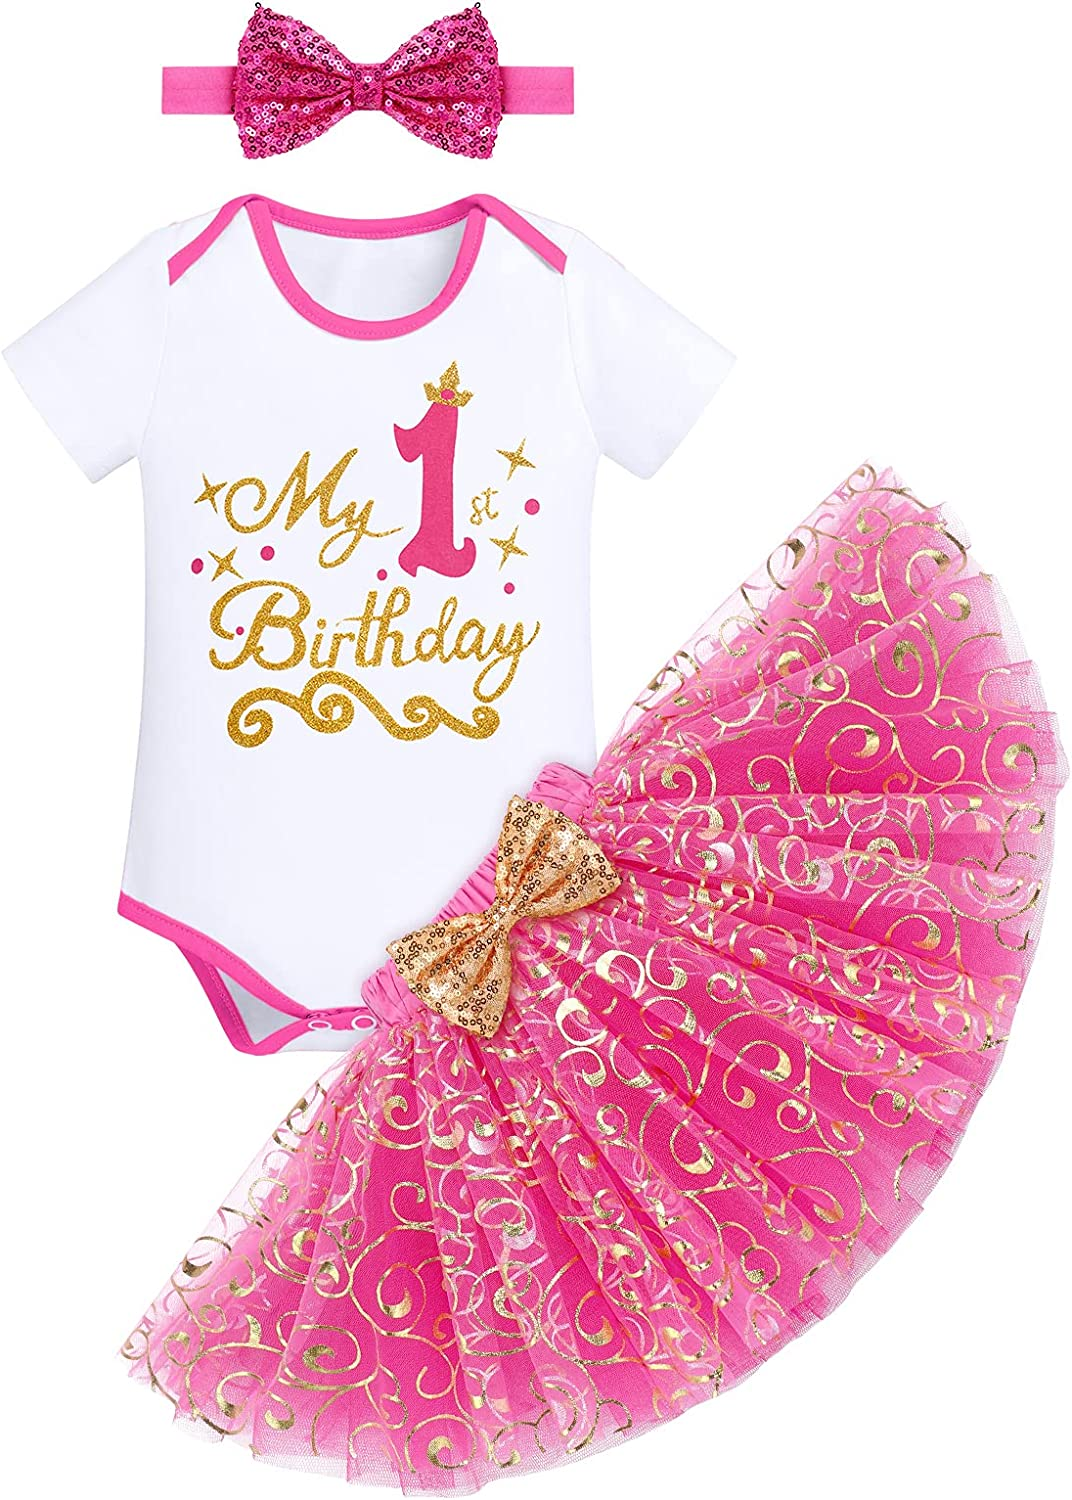 IMEKIS Baby Girls Deluxe Princess 1st OFFer 3rd Outfit 1 year warranty Birthday Ro 2nd